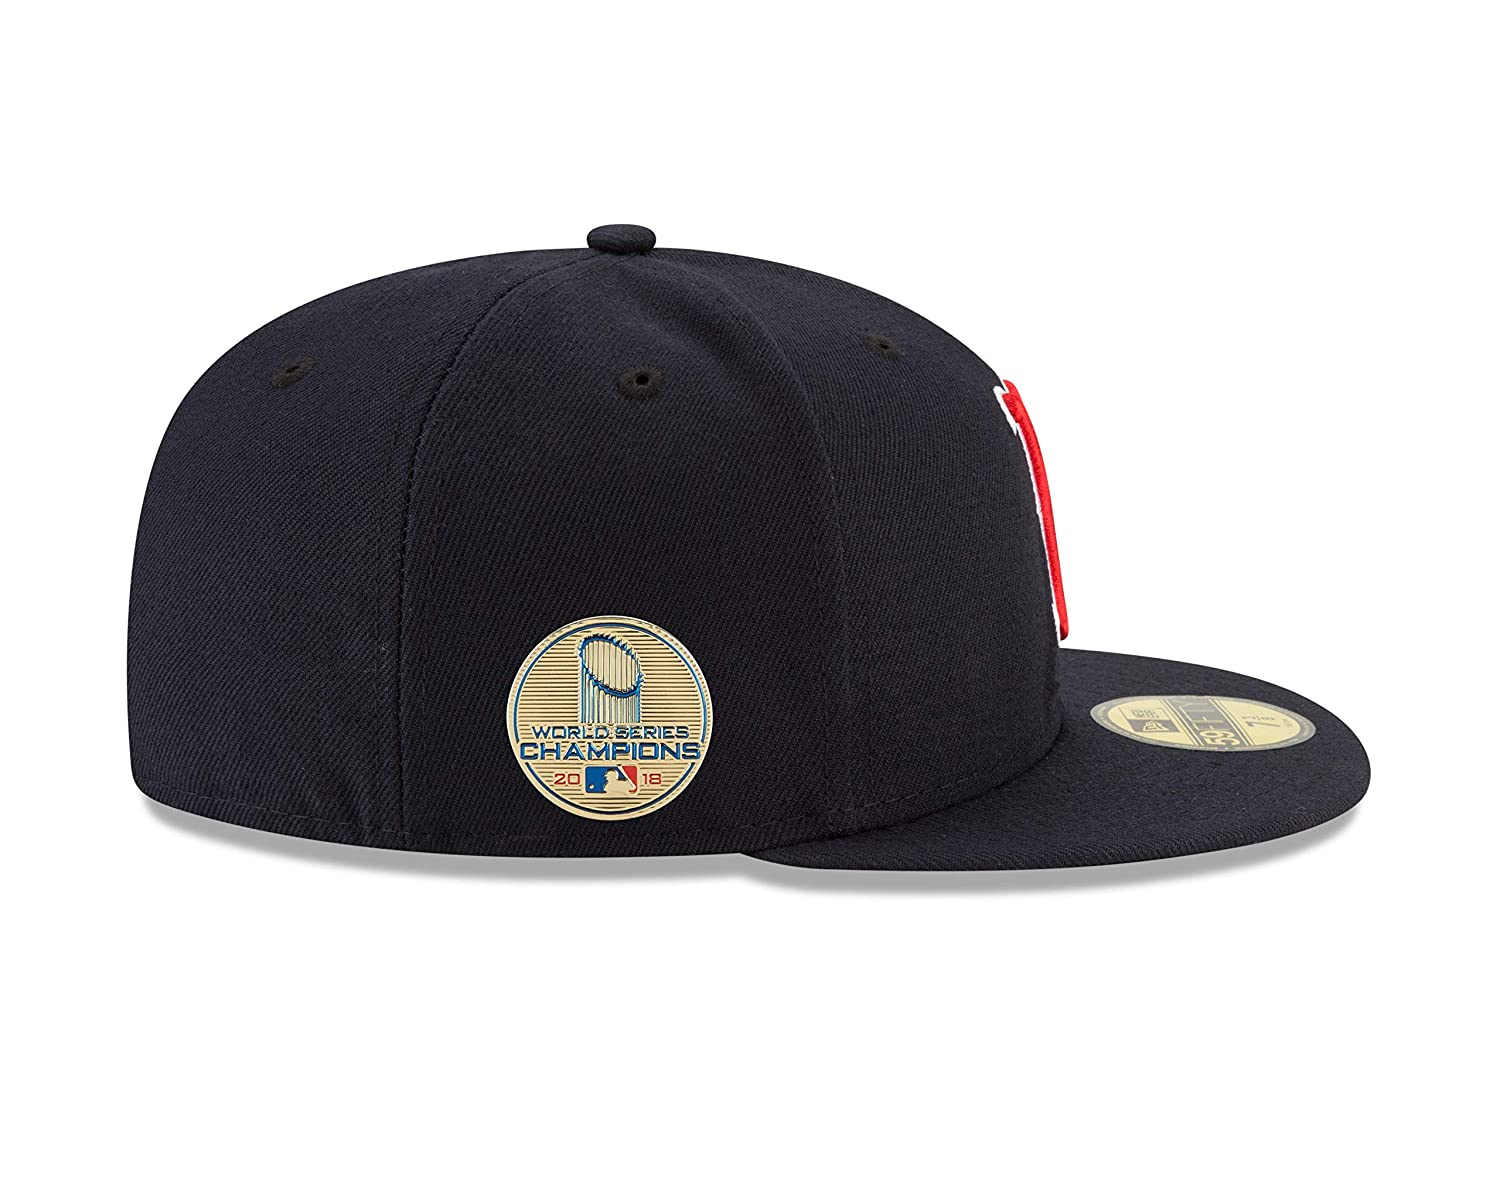 635d61d778b Amazon.com   New Era Boston Red Sox 2018 World Series Champions Side Patch  59FIFTY Fitted Hat - Navy   Sports   Outdoors